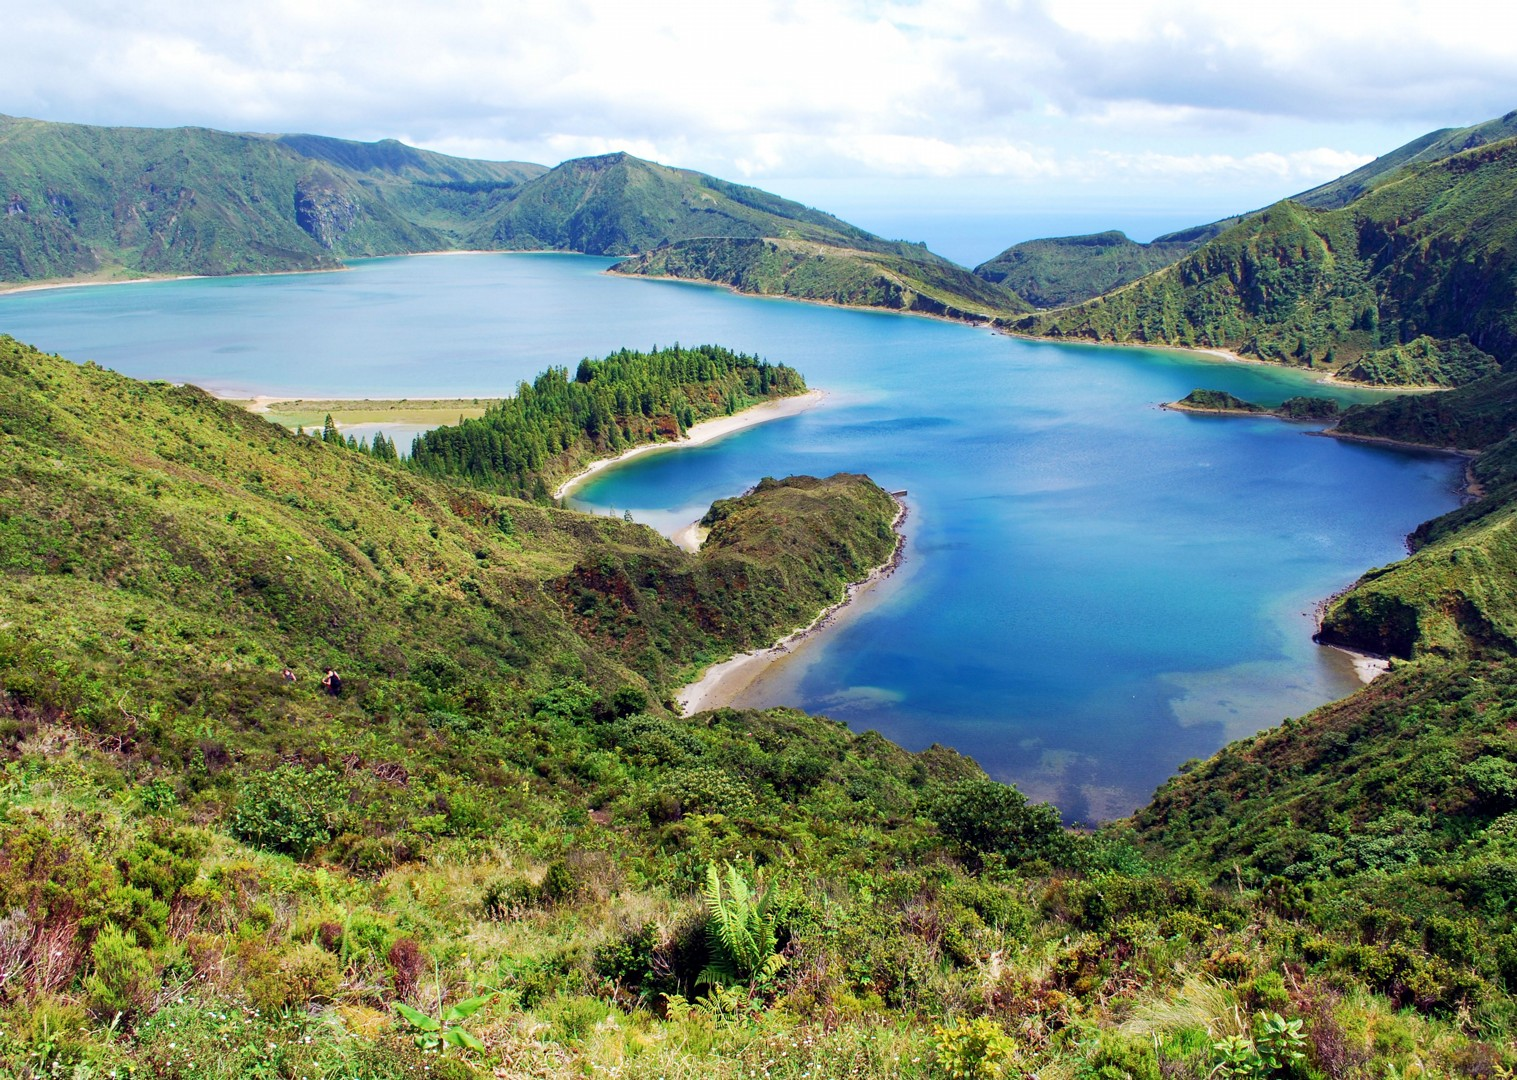 islands-and-volcanoes-self-guided-cycling-holiday.jpg - The Azores - Islands and Volcanoes - Self-Guided Leisure Cycling Holiday - Leisure Cycling